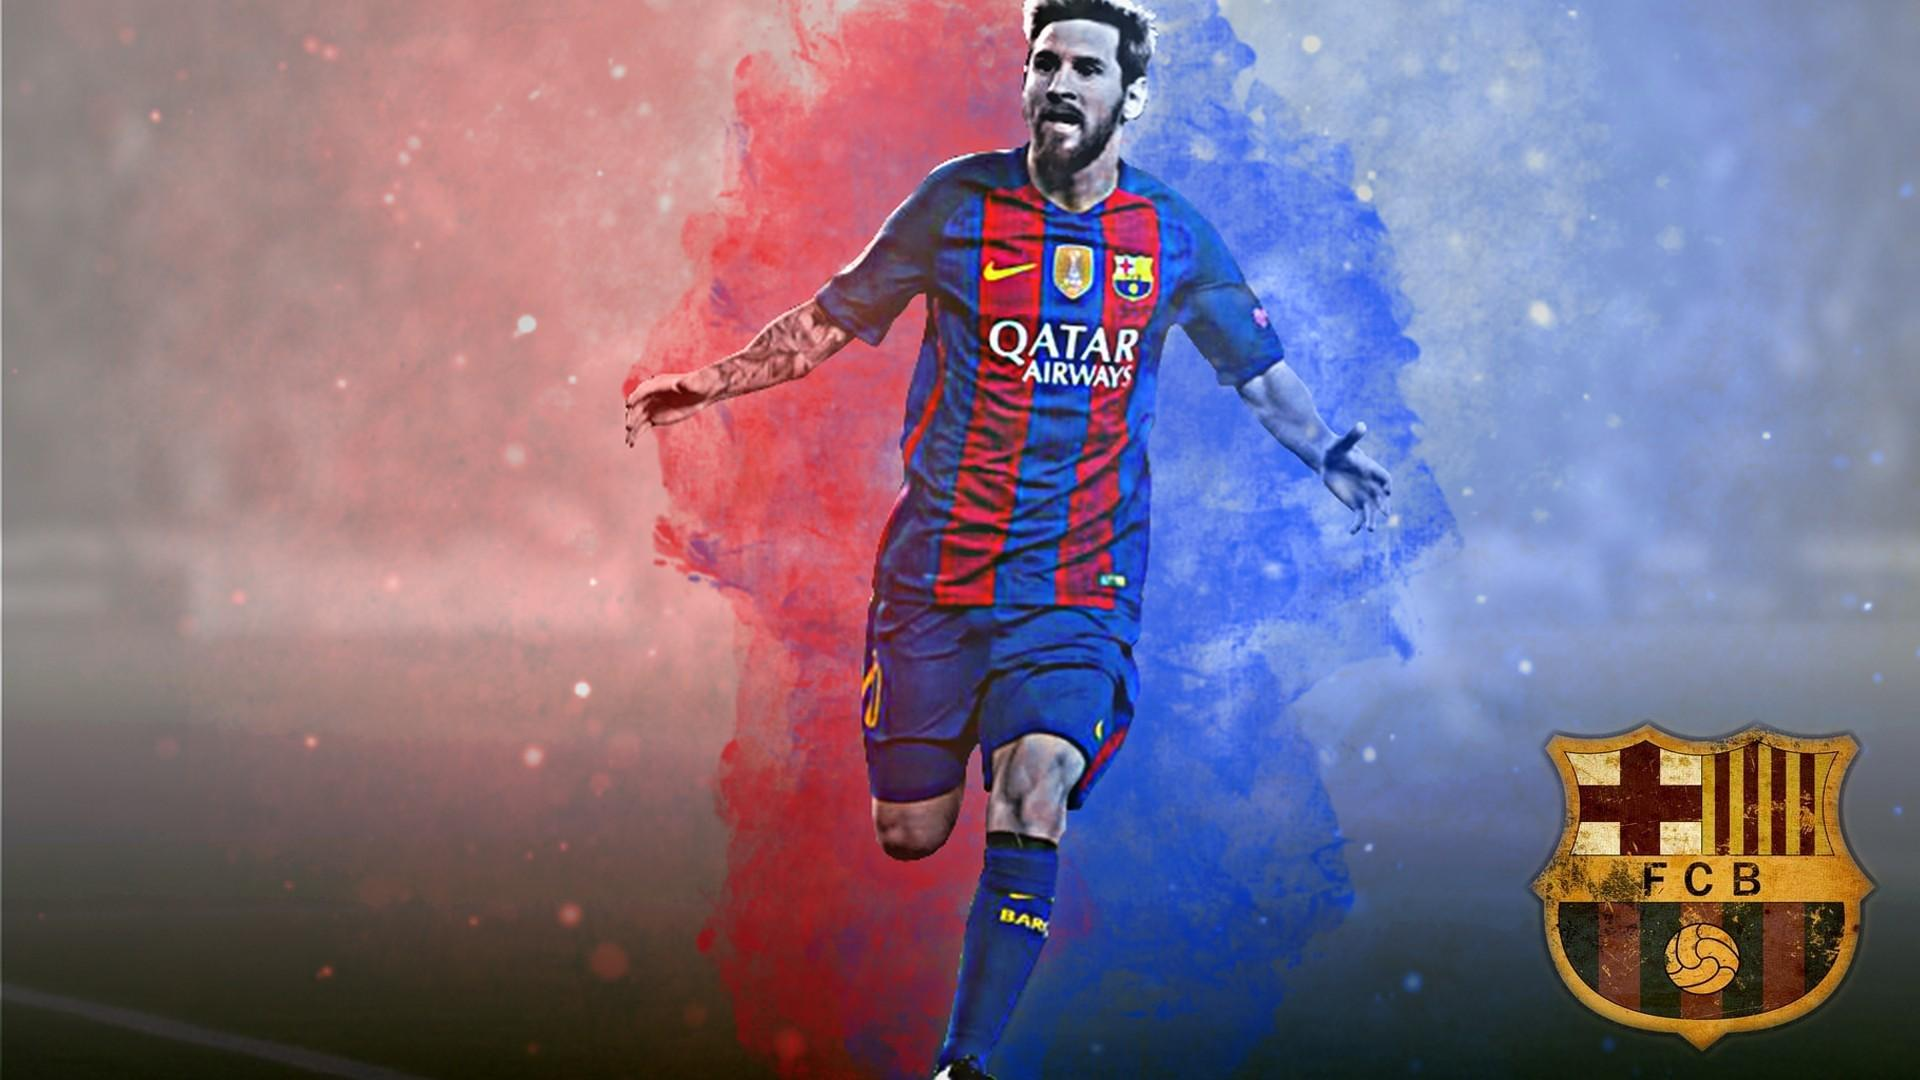 Wallpaper Desktop Lionel Messi HD | 2019 Football Wallpaper